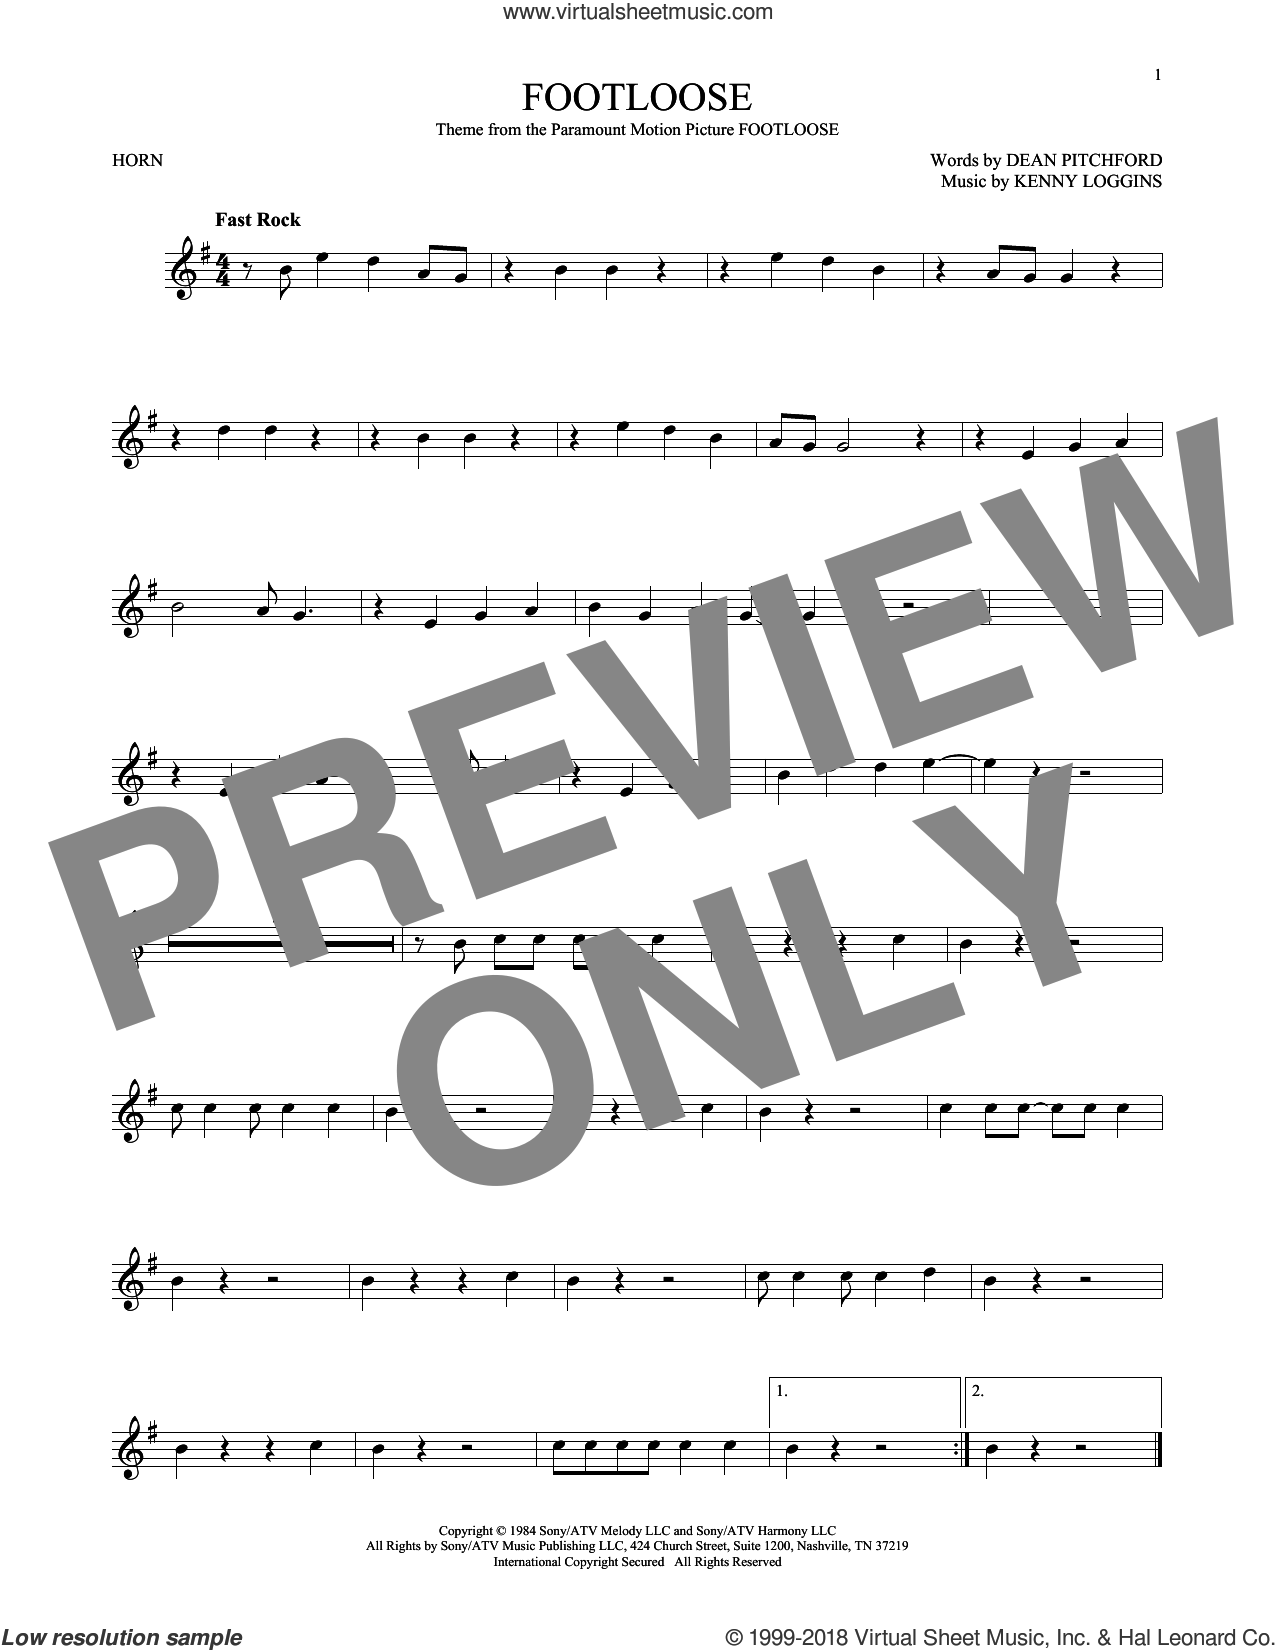 Footloose sheet music for horn solo by Kenny Loggins, Blake Shelton and Dean Pitchford, intermediate skill level